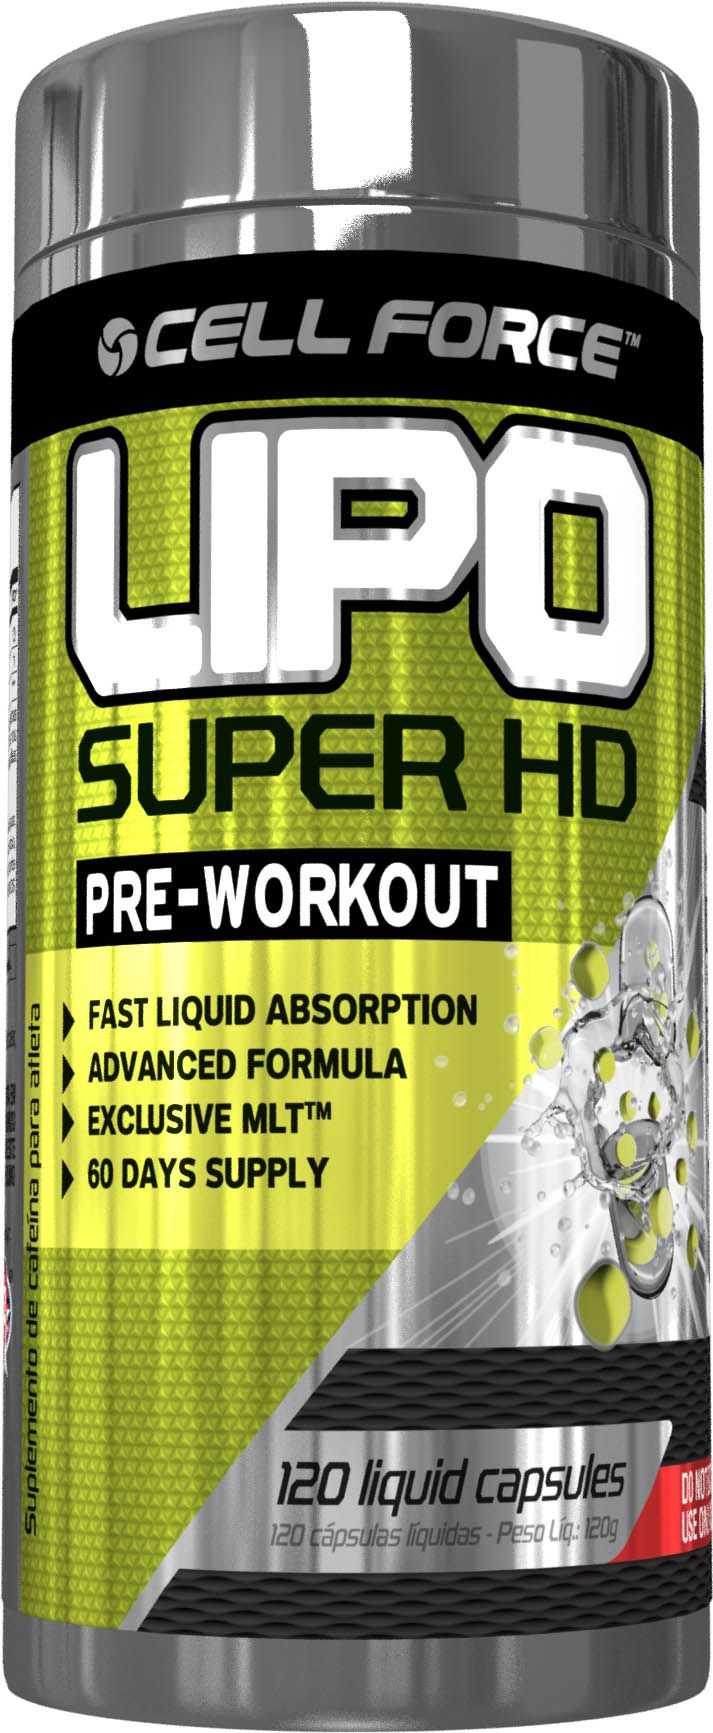 Lipo Super HD 120 Caps. - Cell Force